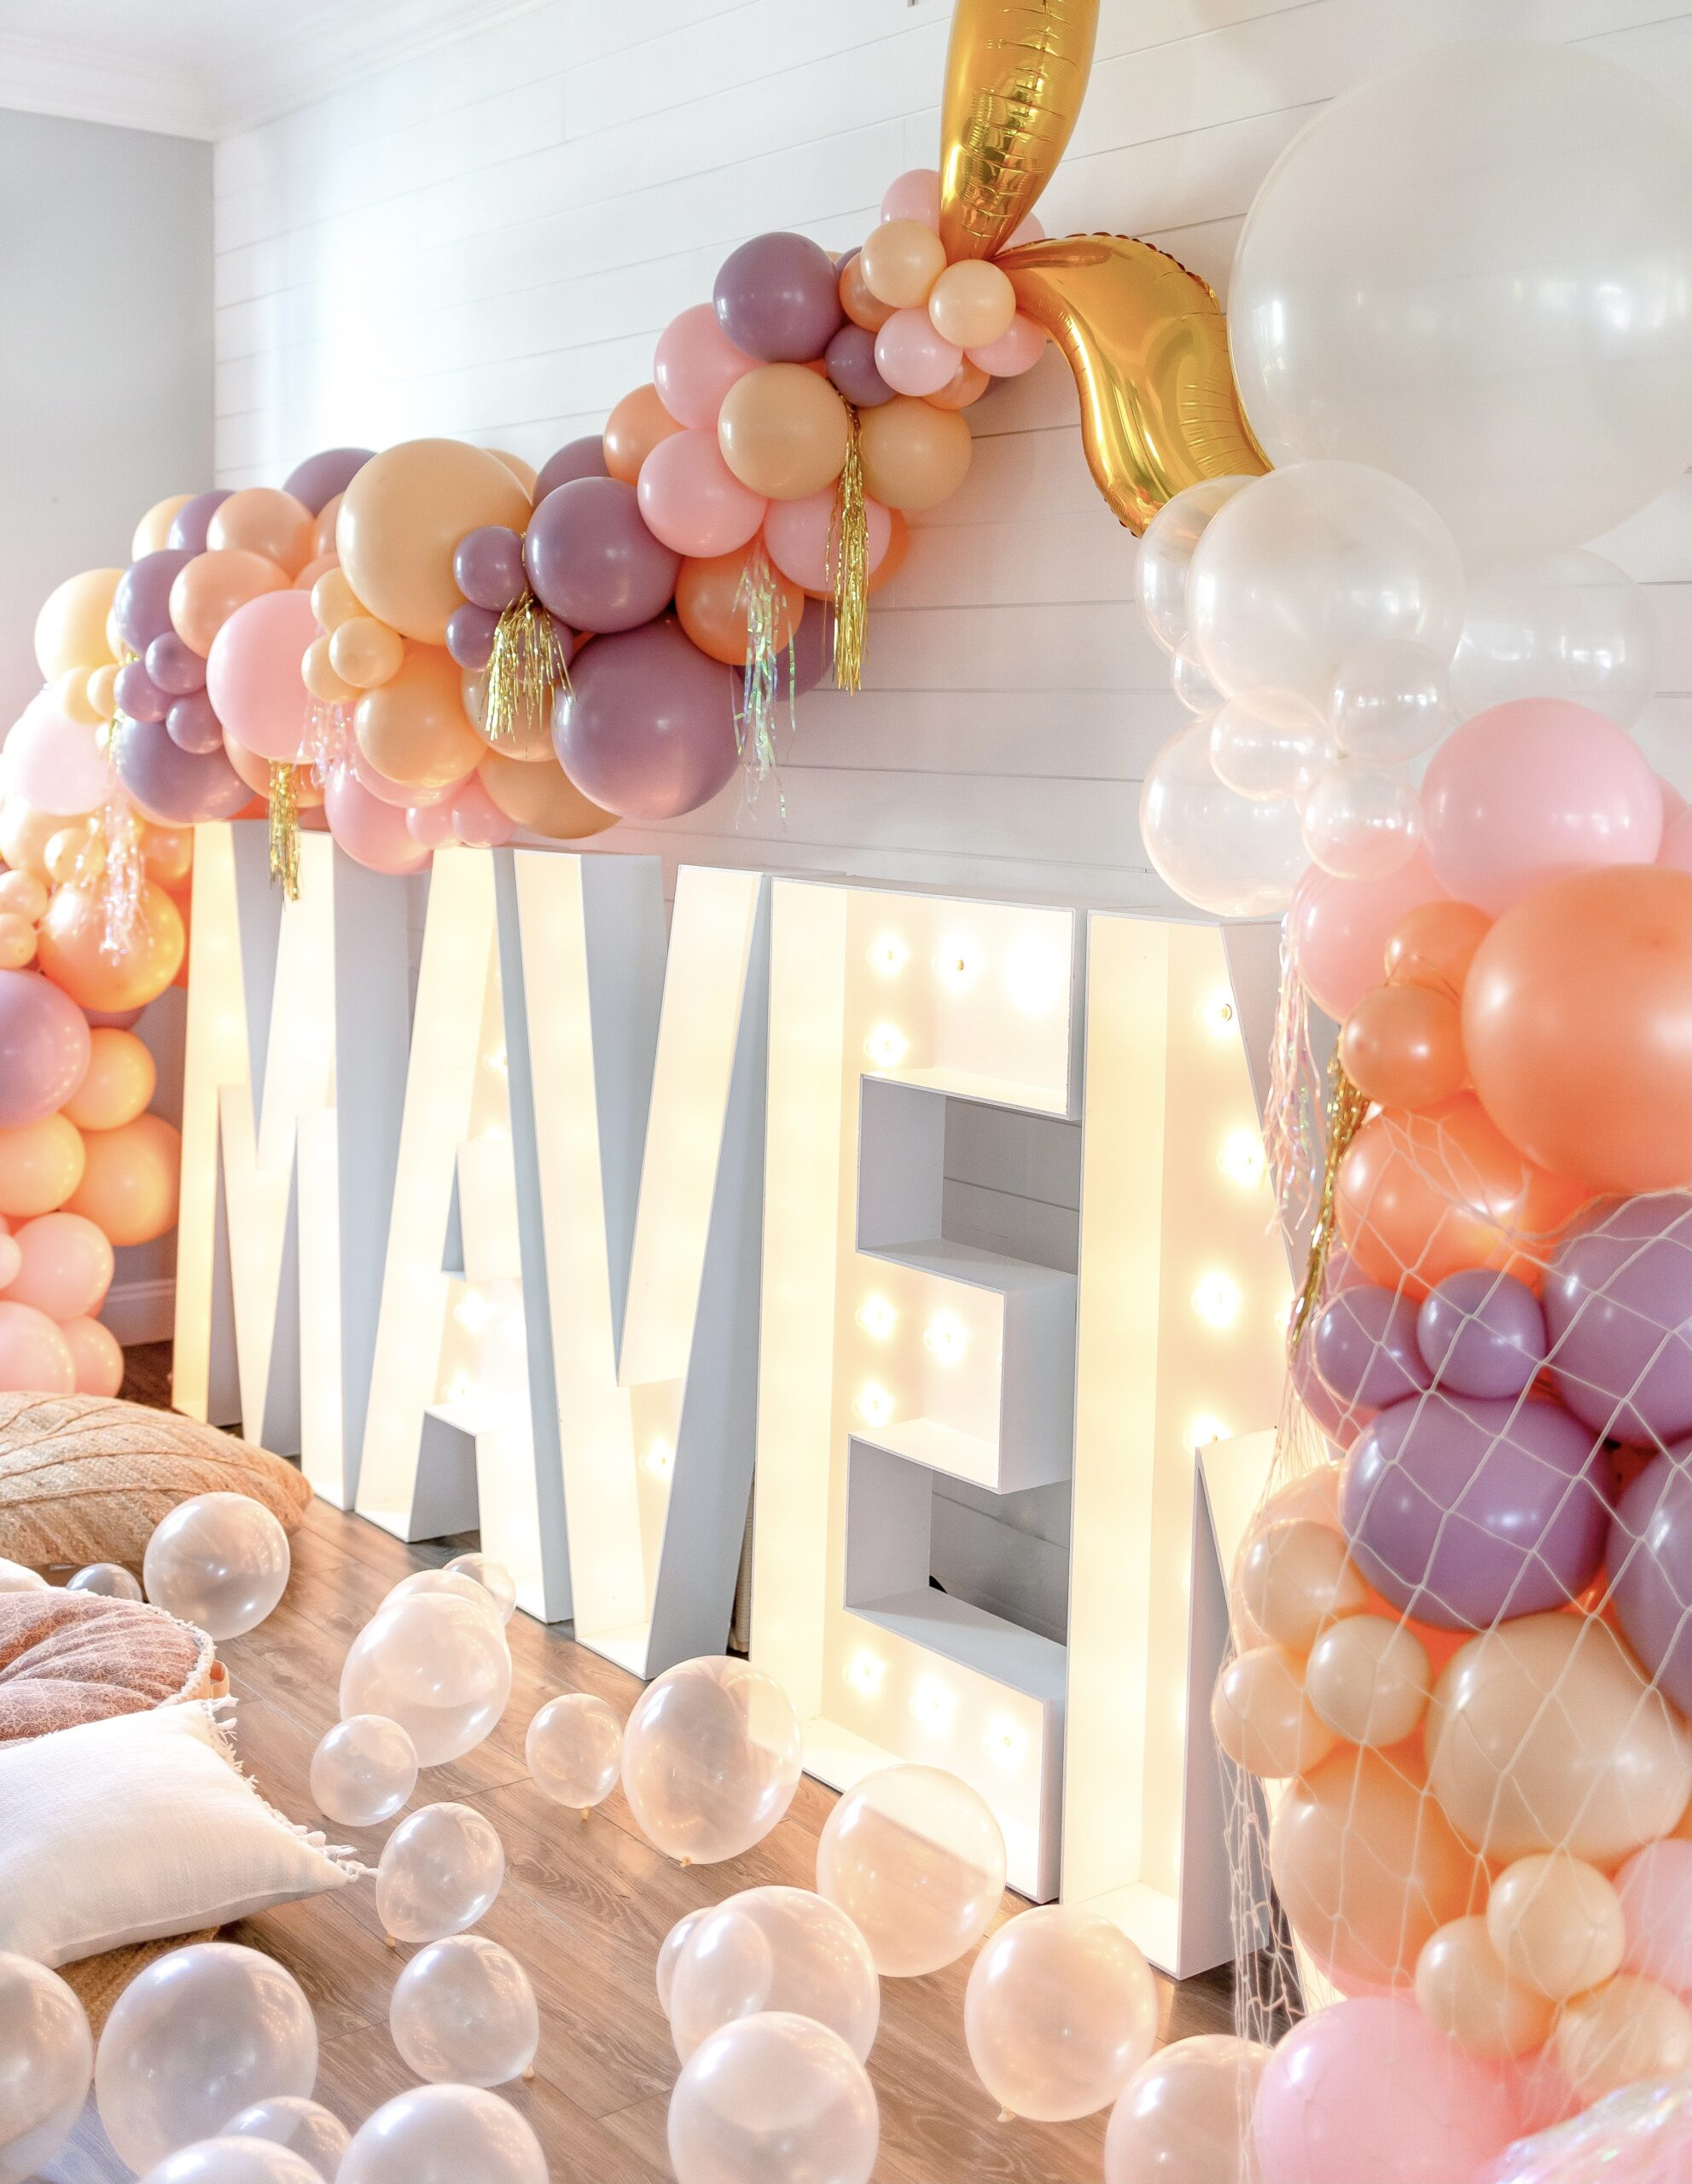 Maven in light up letters with purple, pink, peach and cream balloons in the shape of a mermaid tail